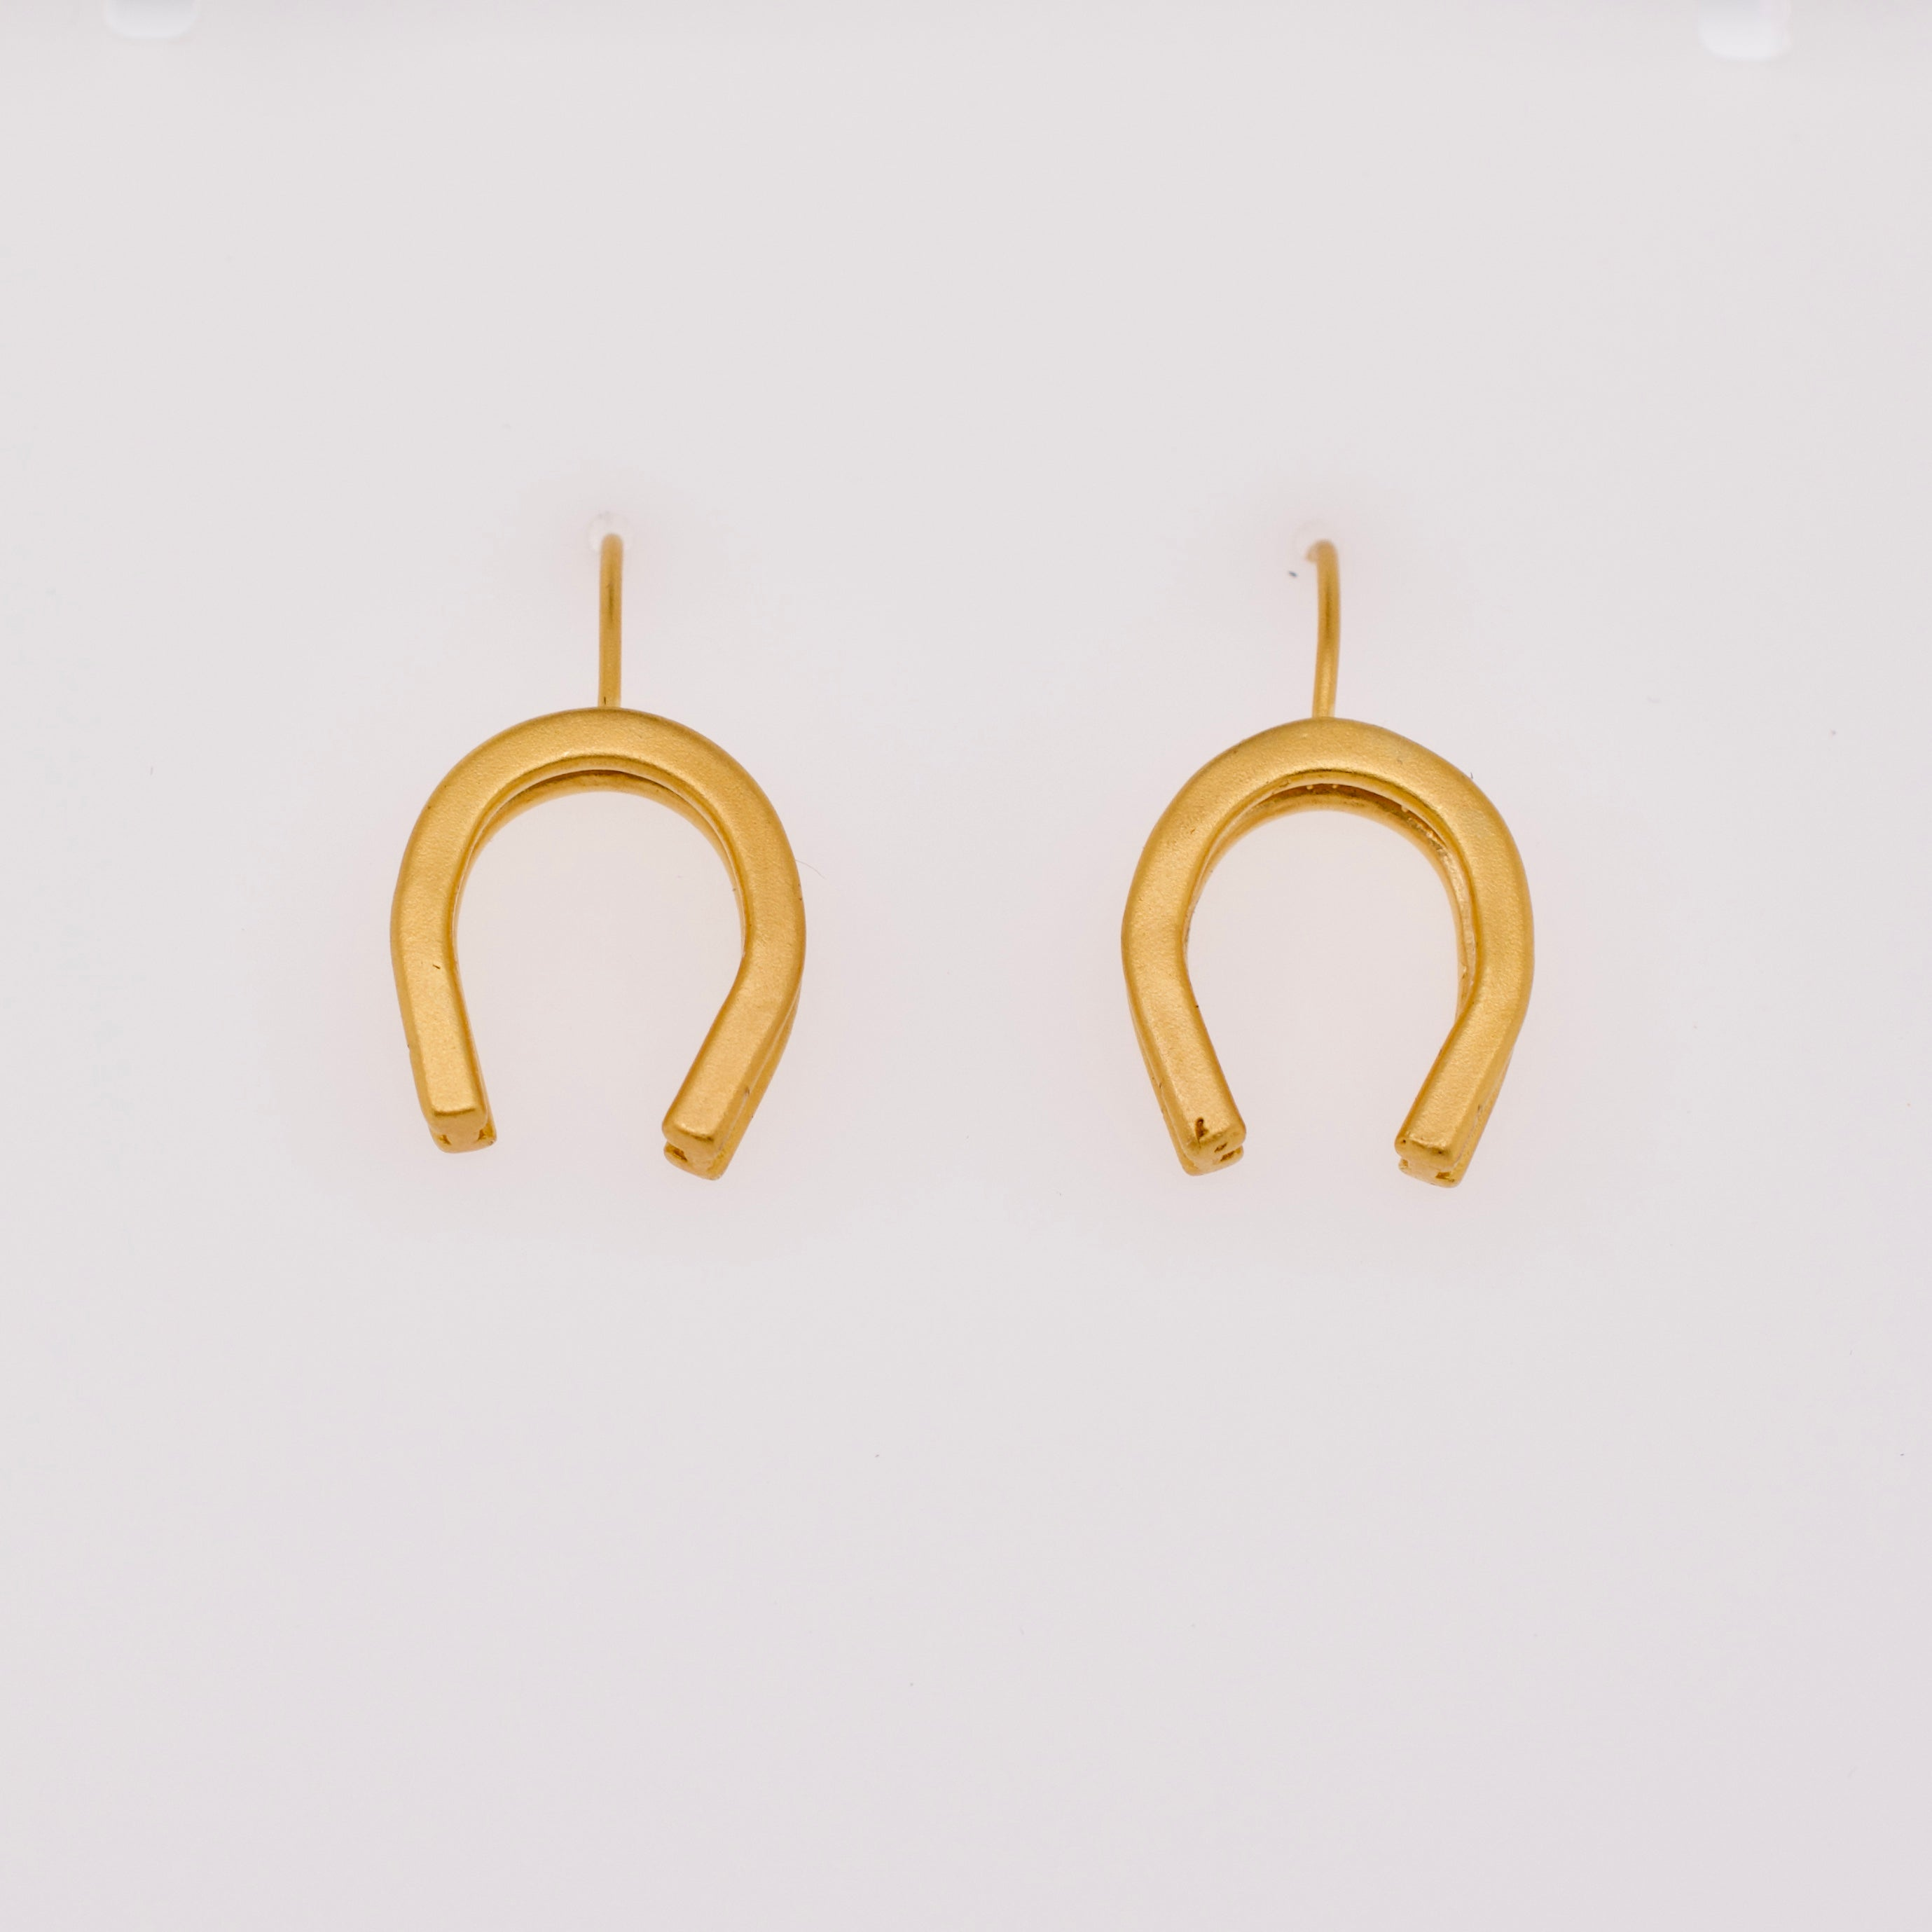 LUCKY // VERMEIL EARRINGS